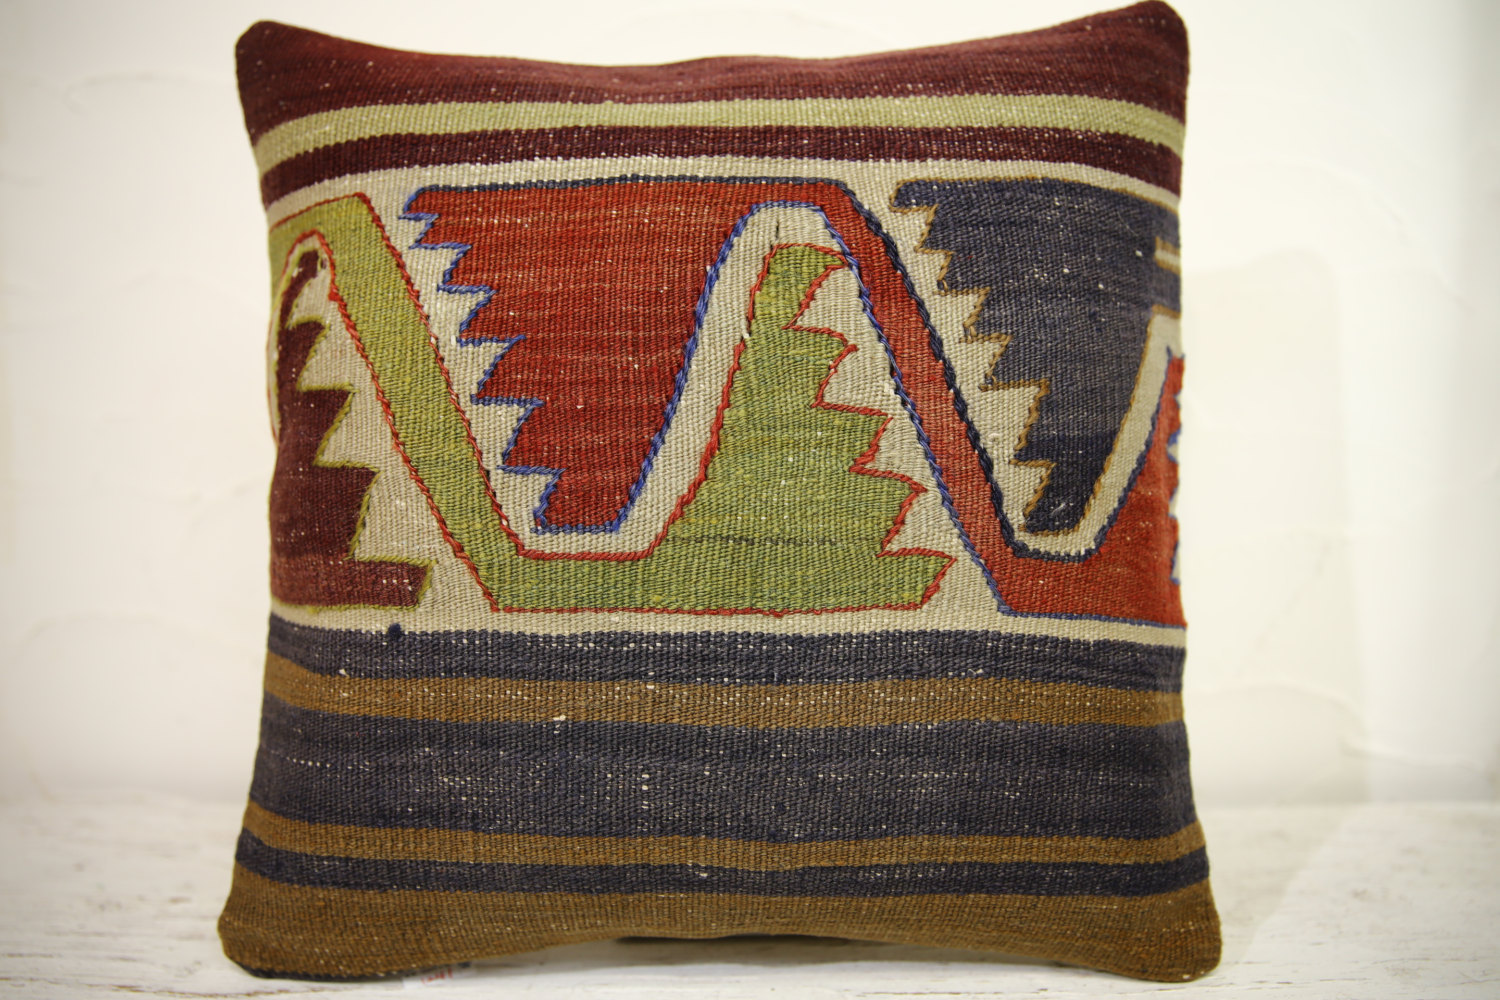 Kilim Pillows | 16x16 | Turkish pillows | 1241 | Accent Pillow,Decorative Pillow